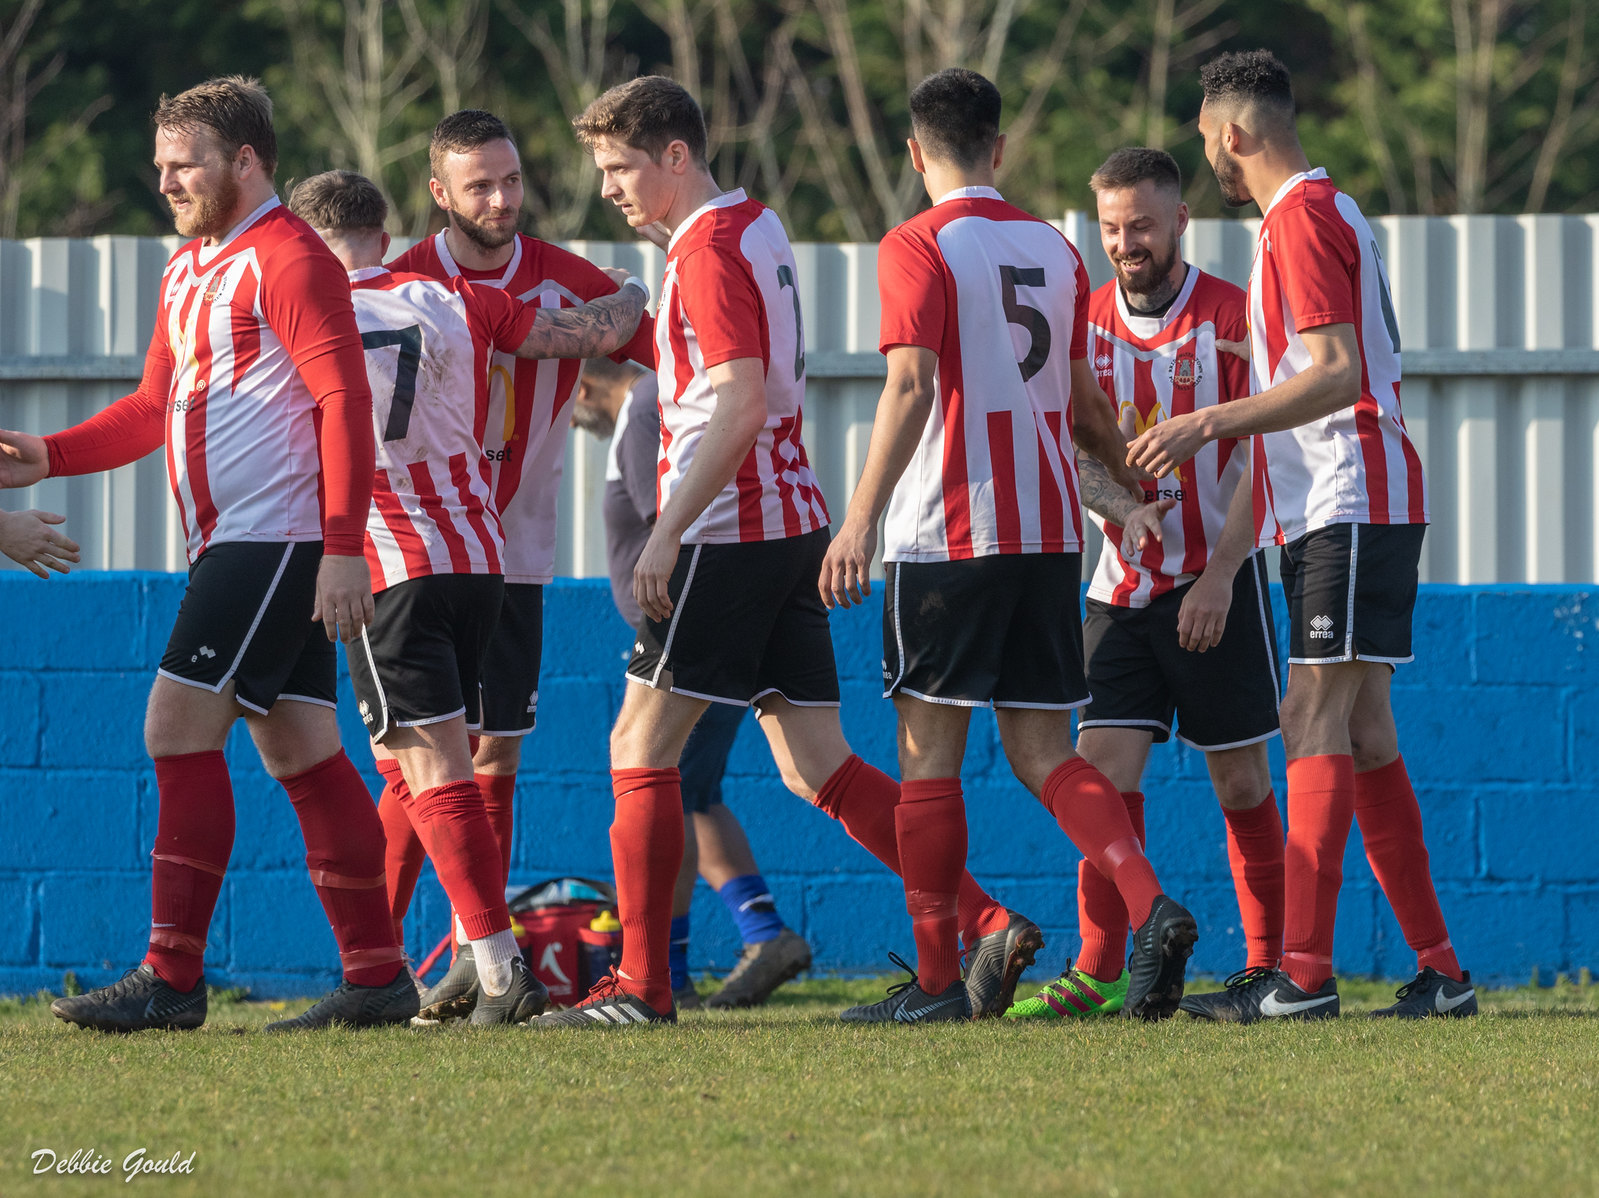 LETHAL: Jack Taylor (pictured second from right) celebrates scoring from Ian Bellinger's (third from left) cross. Pic: Debbie Gould